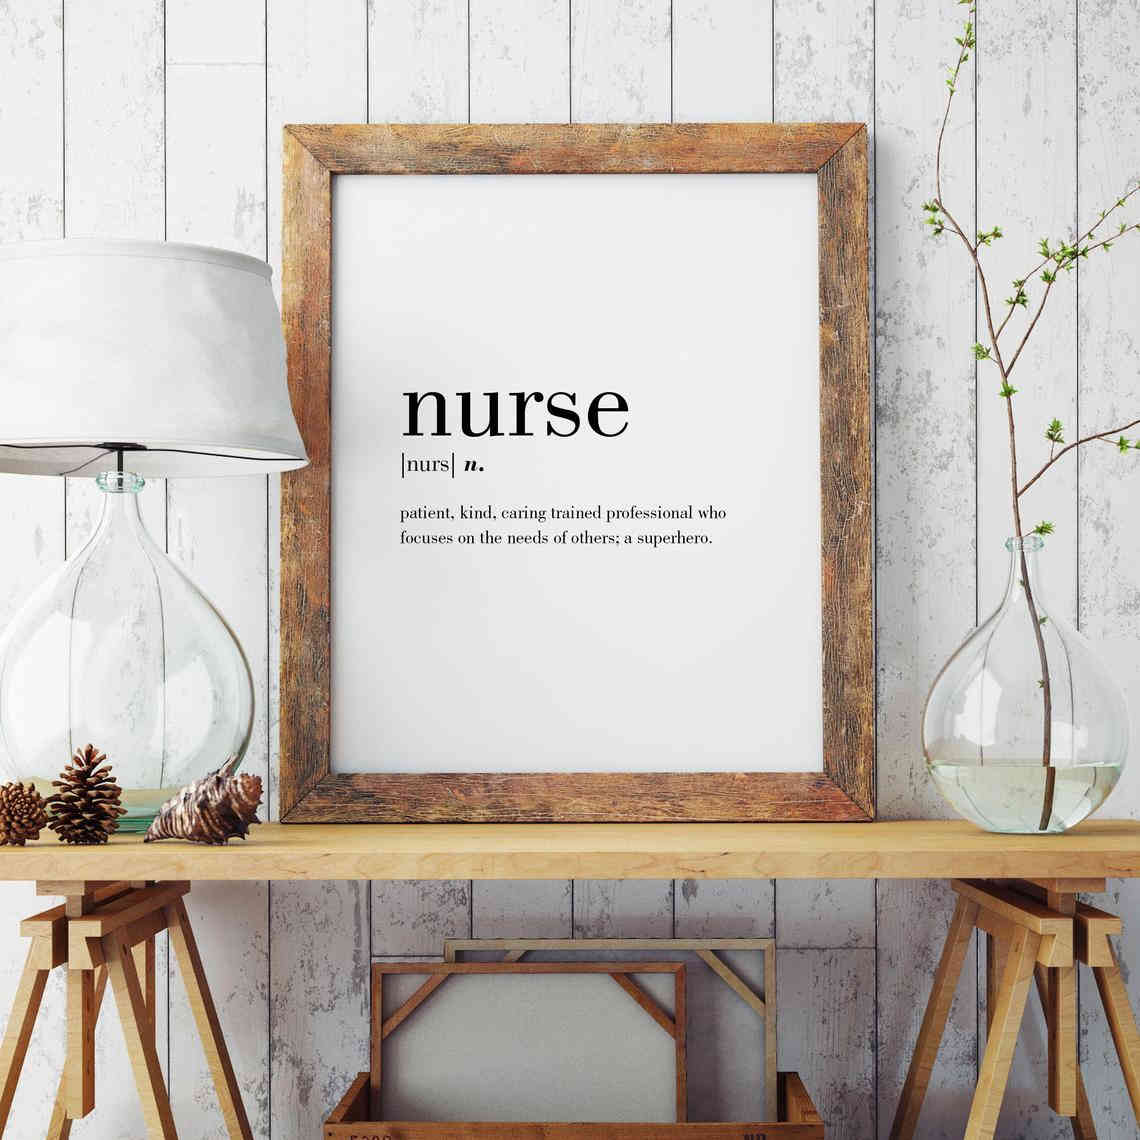 heartfelt definition of nurses